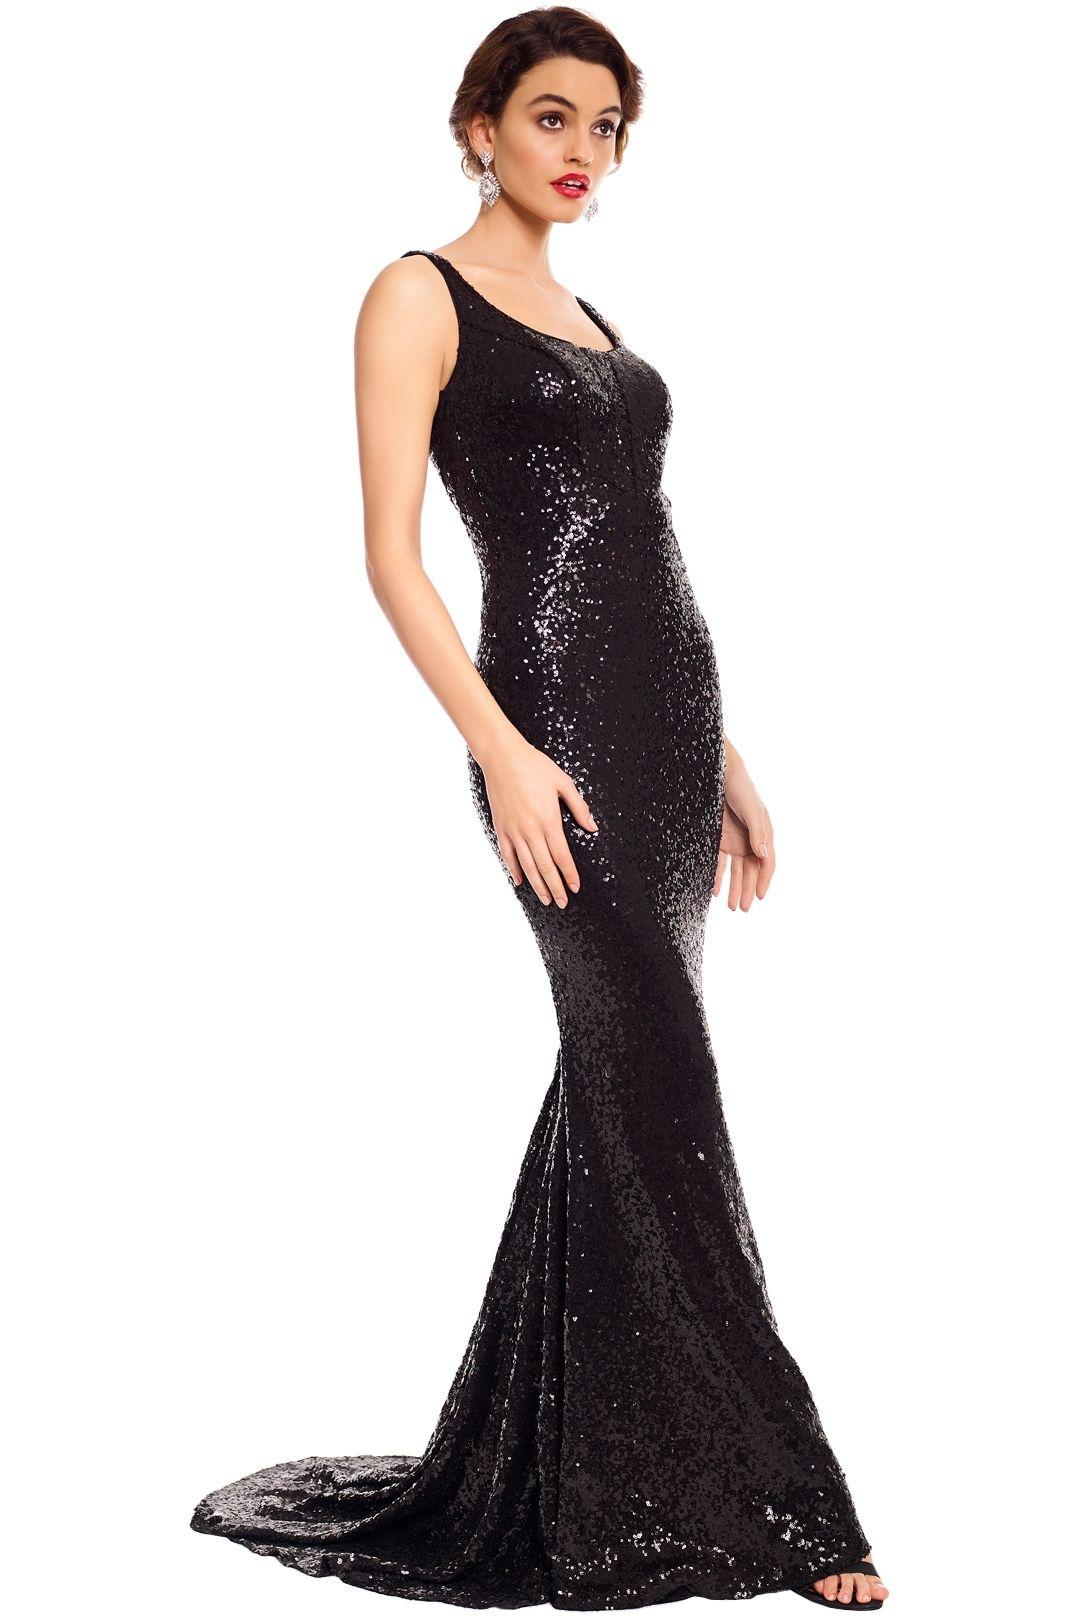 Tinaholy - Annalise Sequin Gown - Black - Side